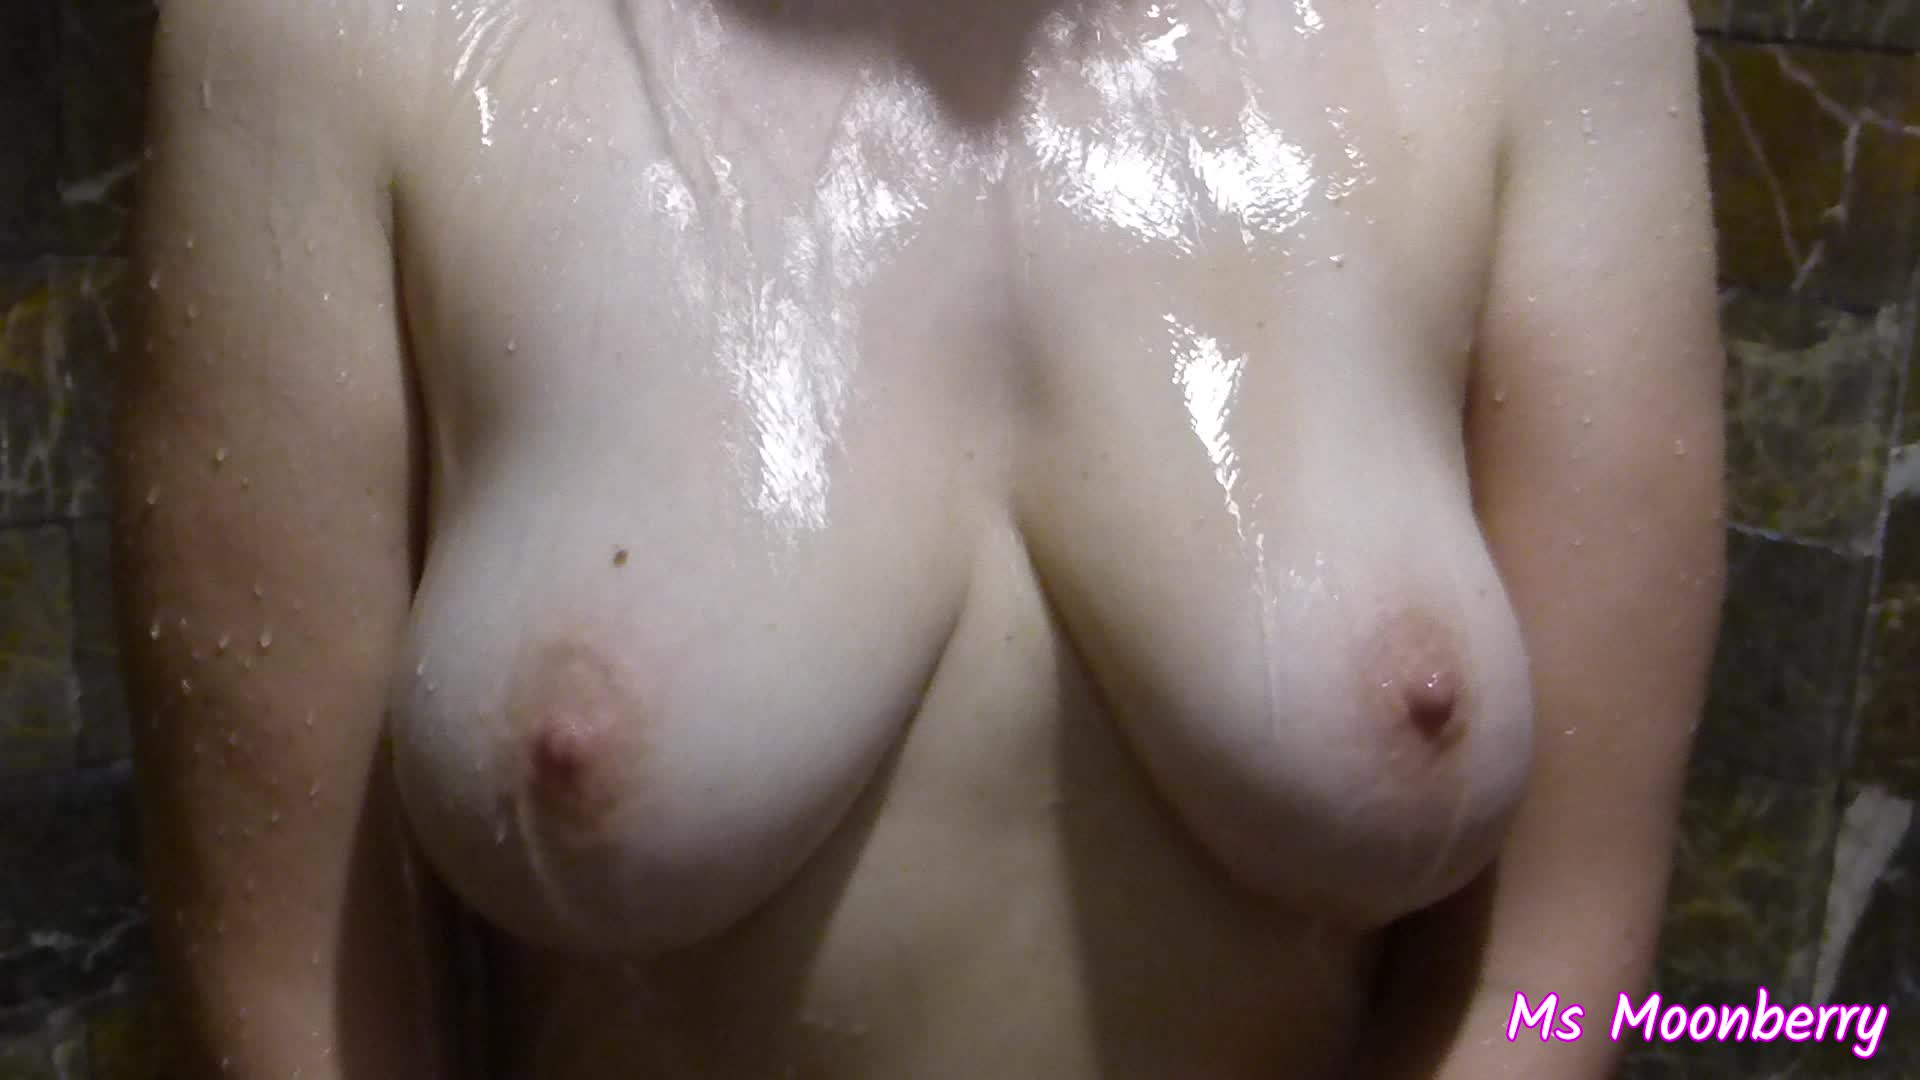 MsMoonberry showering - quick shower show - soaping tits and ass